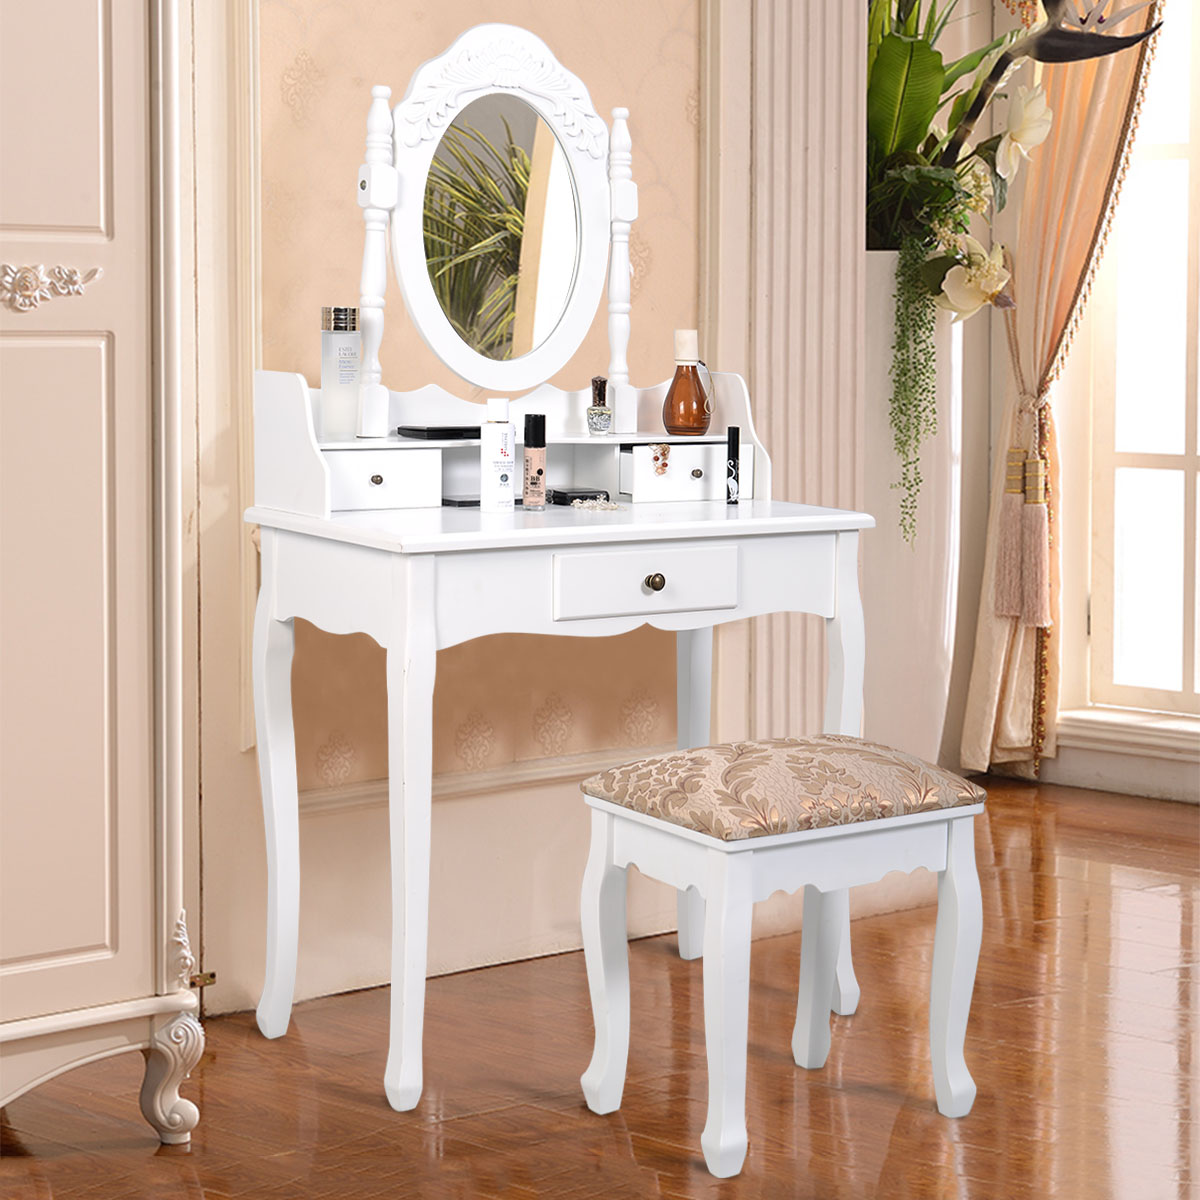 costway vanity table jewelry makeup desk bench dresser w 301 moved permanently